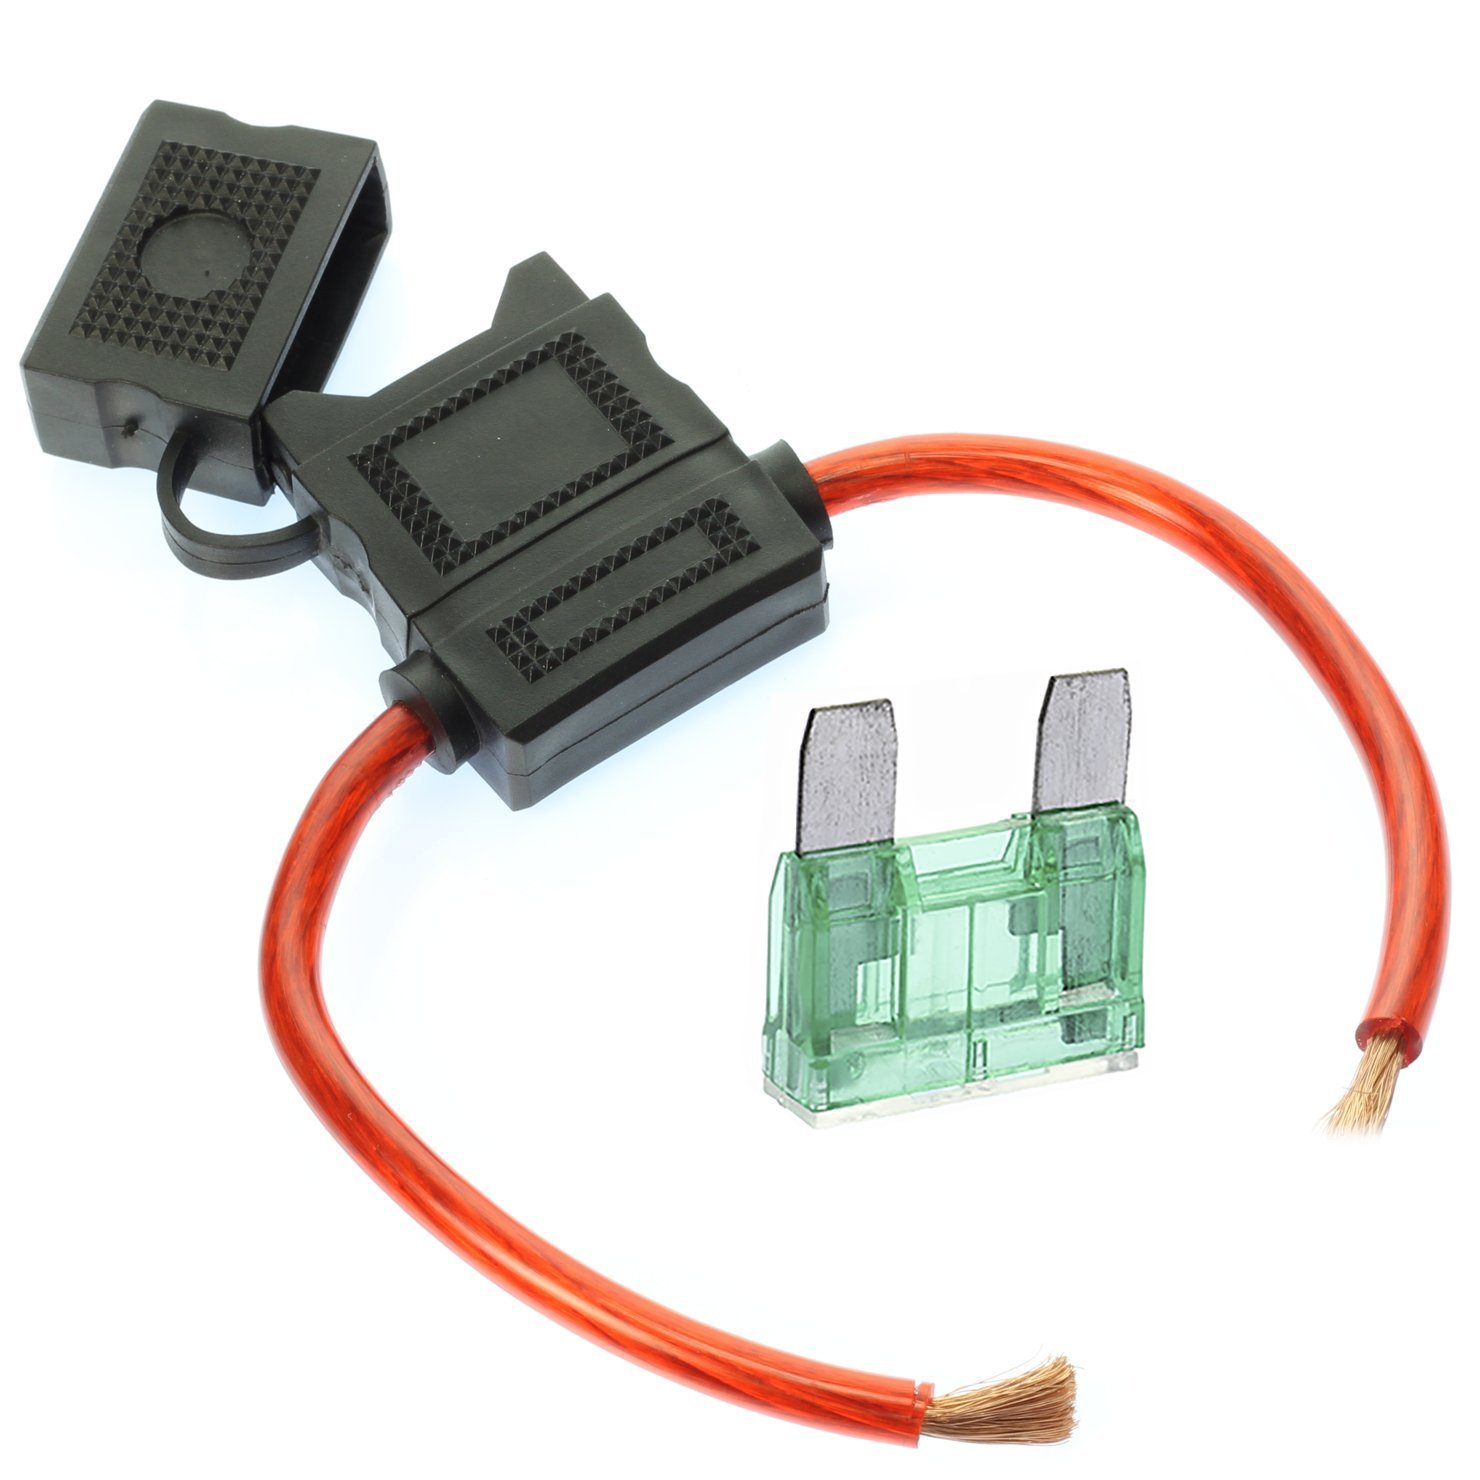 Cheap 3 Amp Inline Fuse Find Deals On Line At Maxi Box Get Quotations Voodoo 2 8 Gauge Holder Fuseholder With Cover And